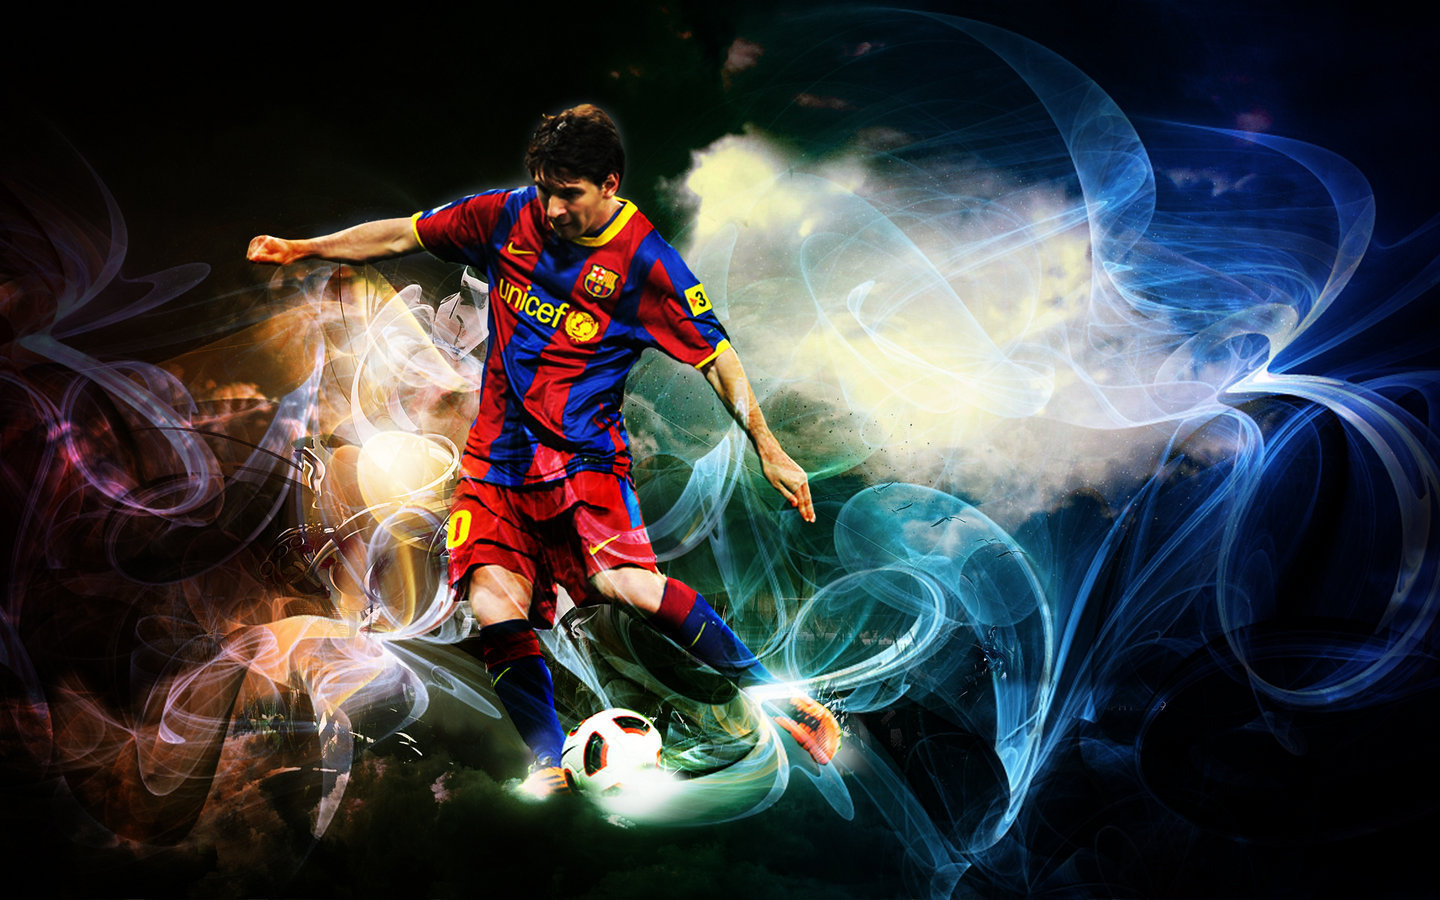 Download image Cool Soccer Wallpaper Lionel Messi PC Android iPhone 1440x900